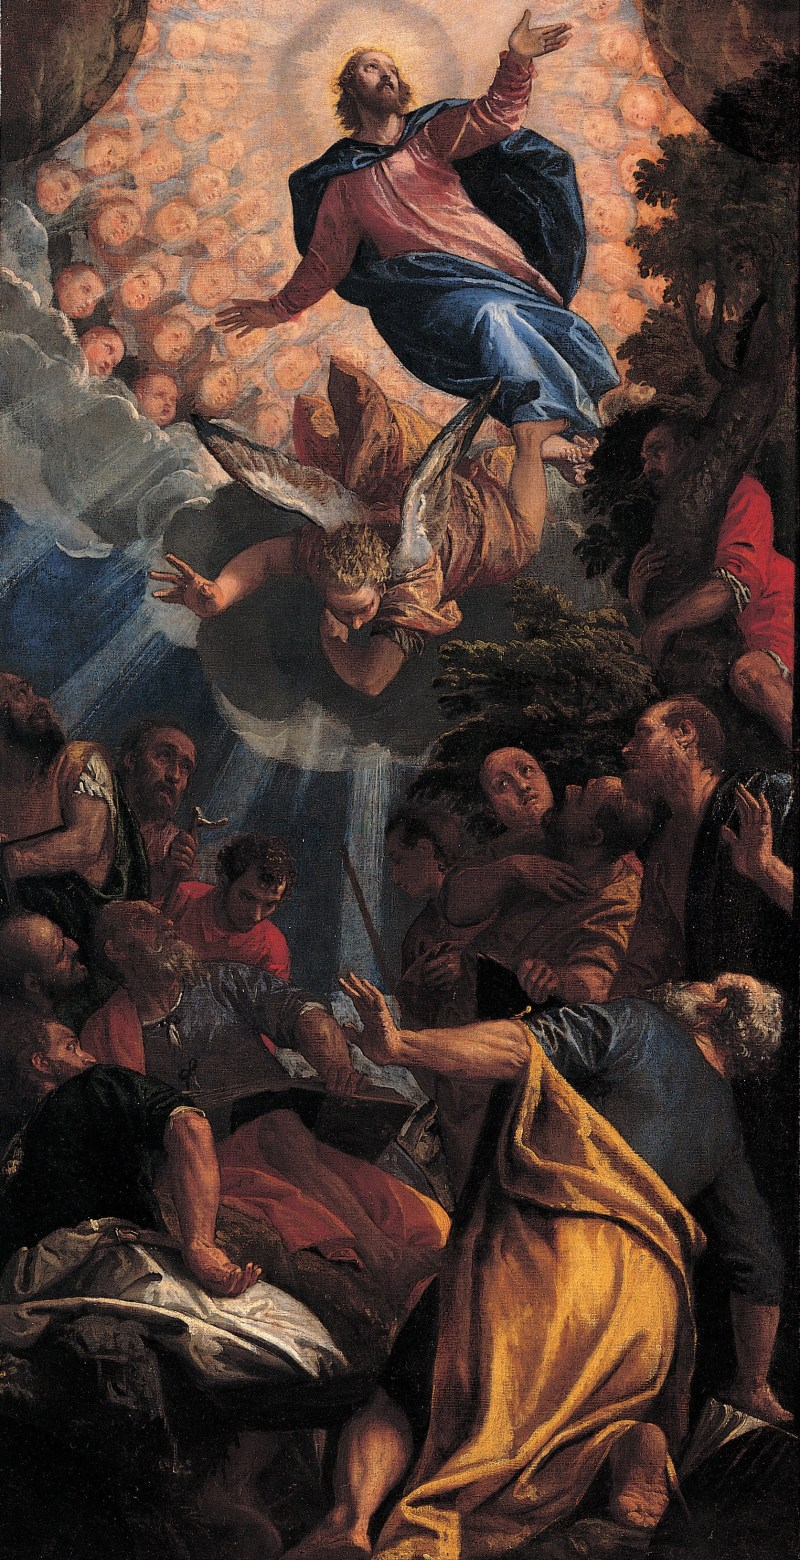 The Ascension, by Paolo Veronese